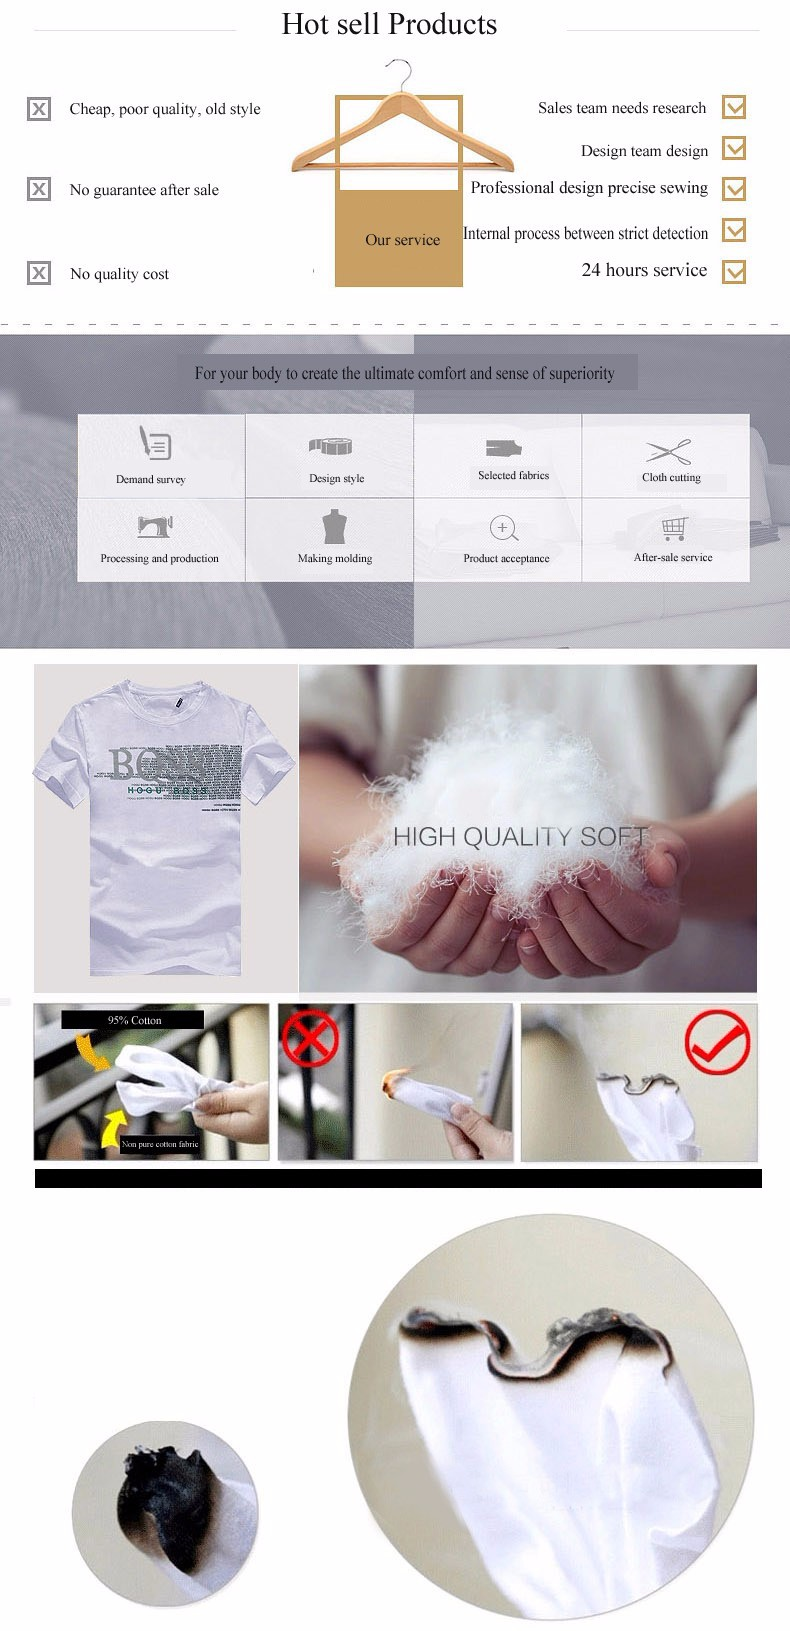 Design your own t shirt good quality - Design Your Own Cotton T Shirt Custom T Shirt Printing T Shirt Wholesale China